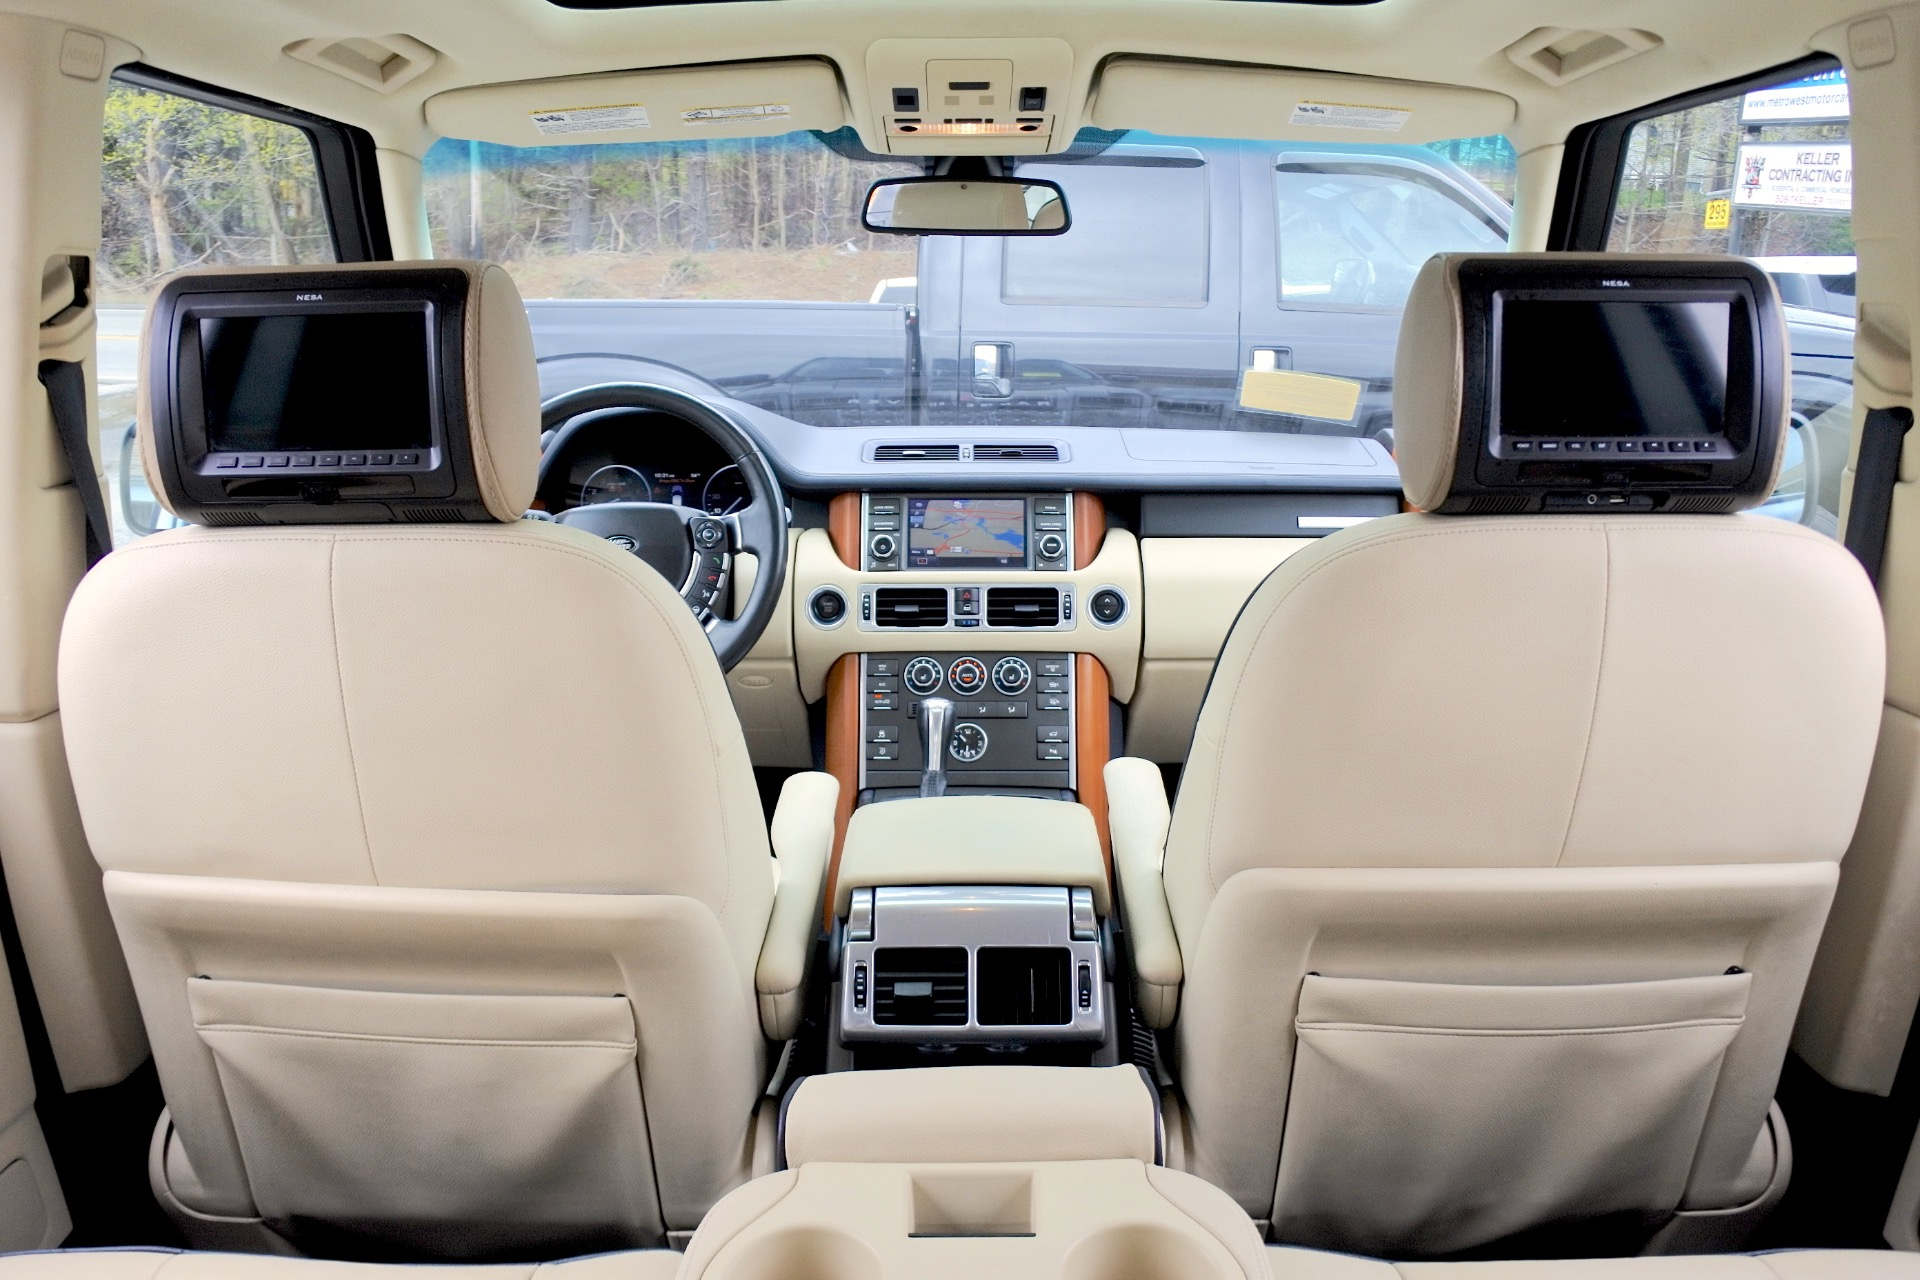 Used 2011 Land Rover Range Rover HSE Used 2011 Land Rover Range Rover HSE for sale  at Metro West Motorcars LLC in Shrewsbury MA 17